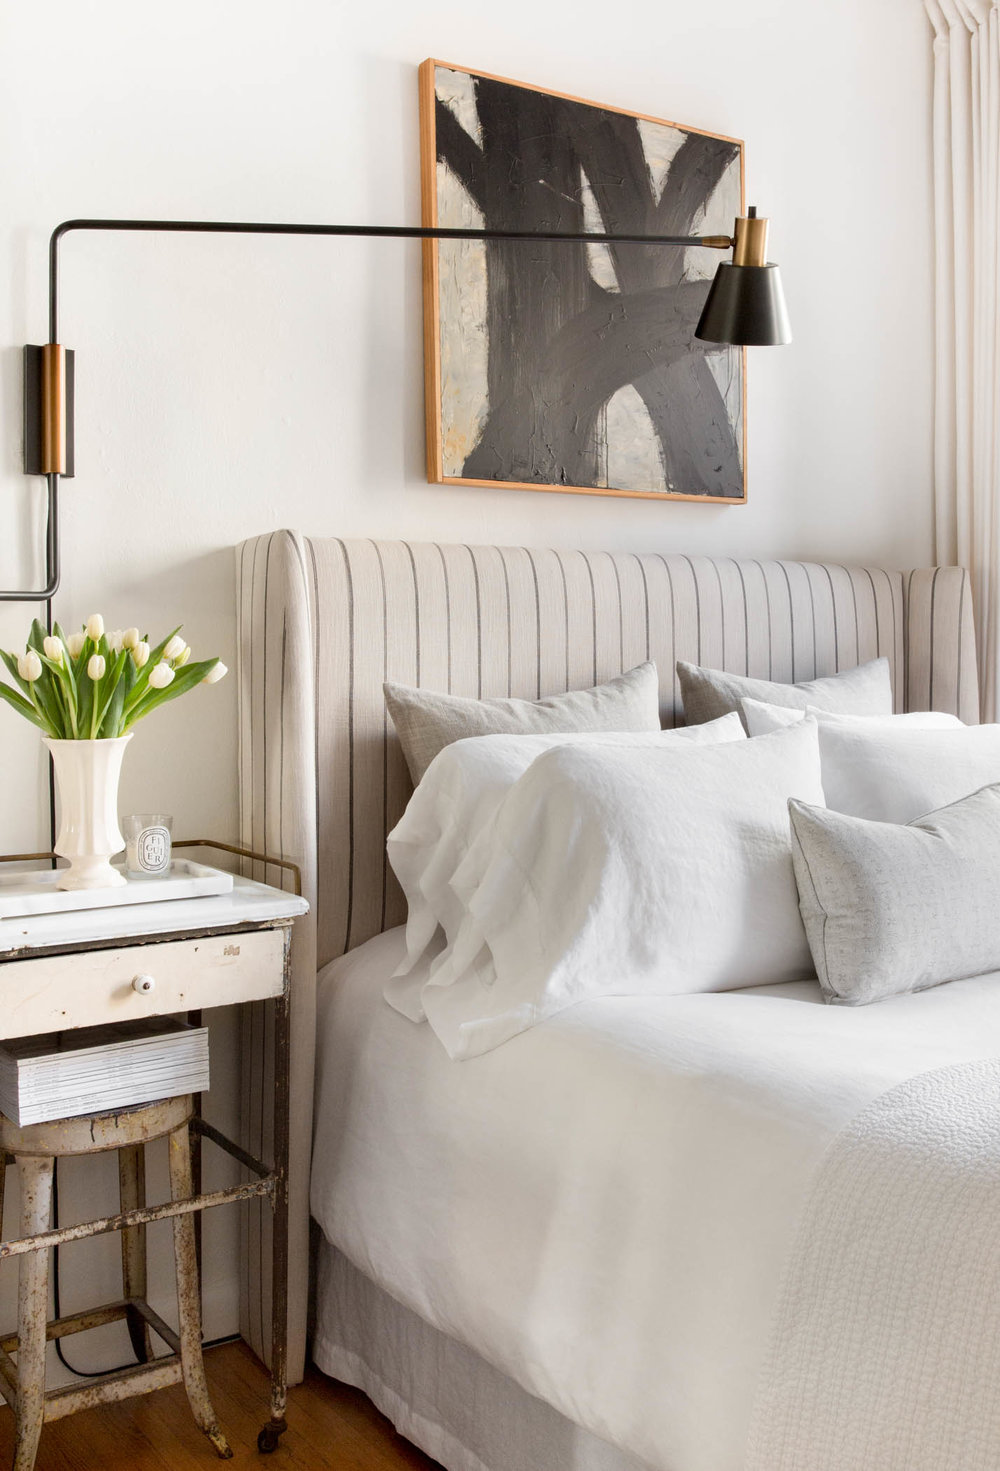 Design by  Meagan Camp Interiors